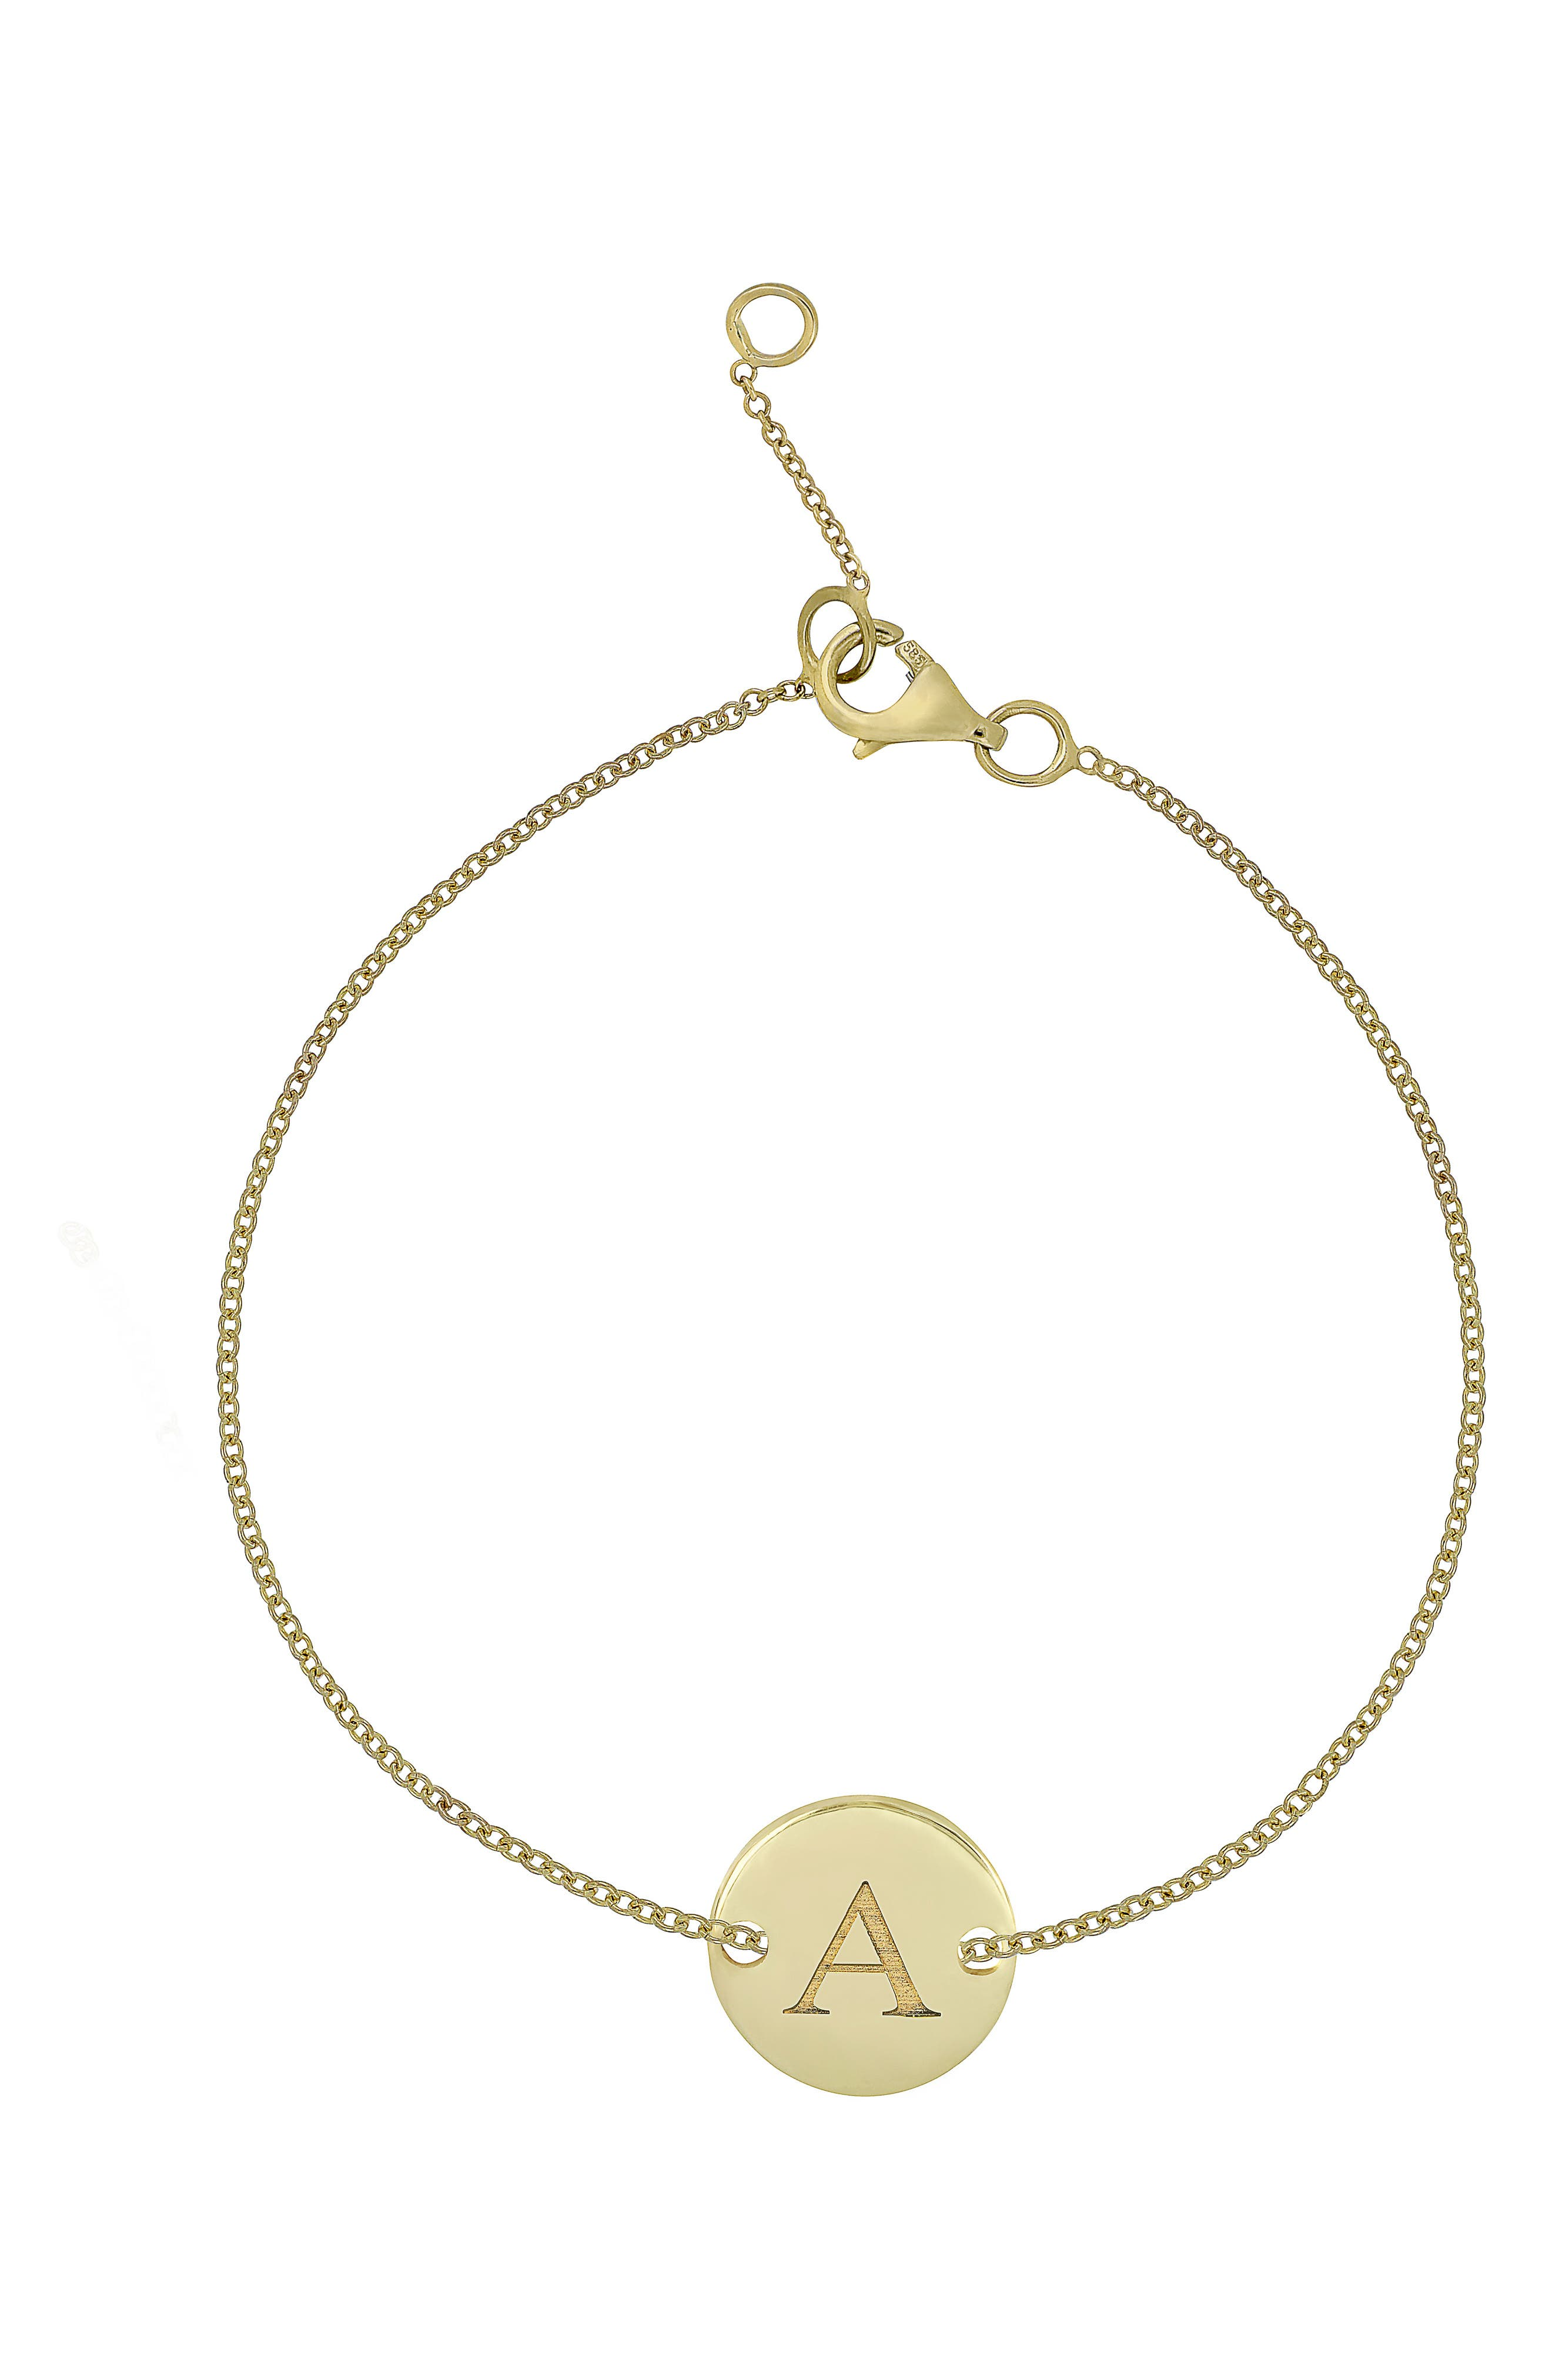 14k Gold Initial Bracelet,                         Main,                         color, Yellow Gold- A